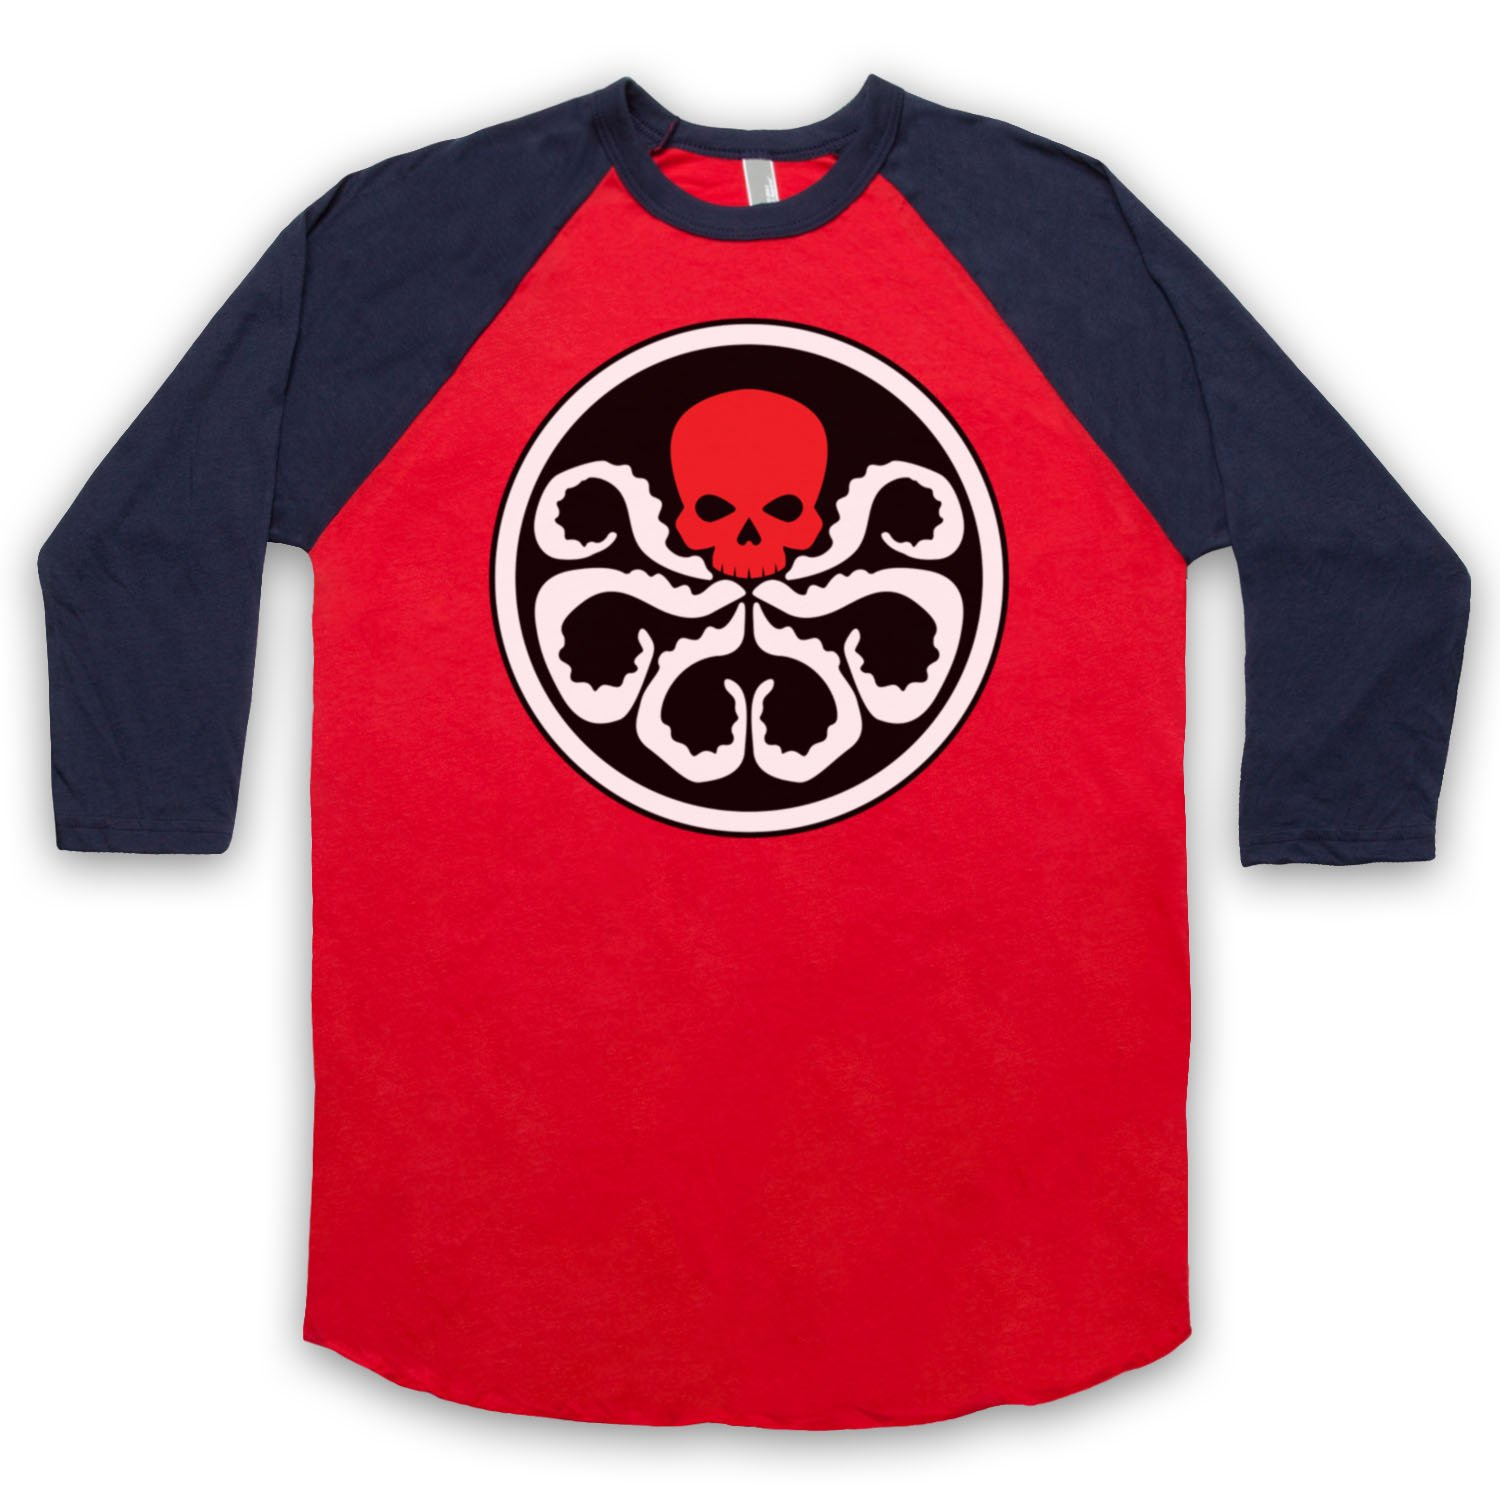 Inspired by Captain America Hydra Red Skull Unofficial 3/4 Sleeve Retro Baseball Tee